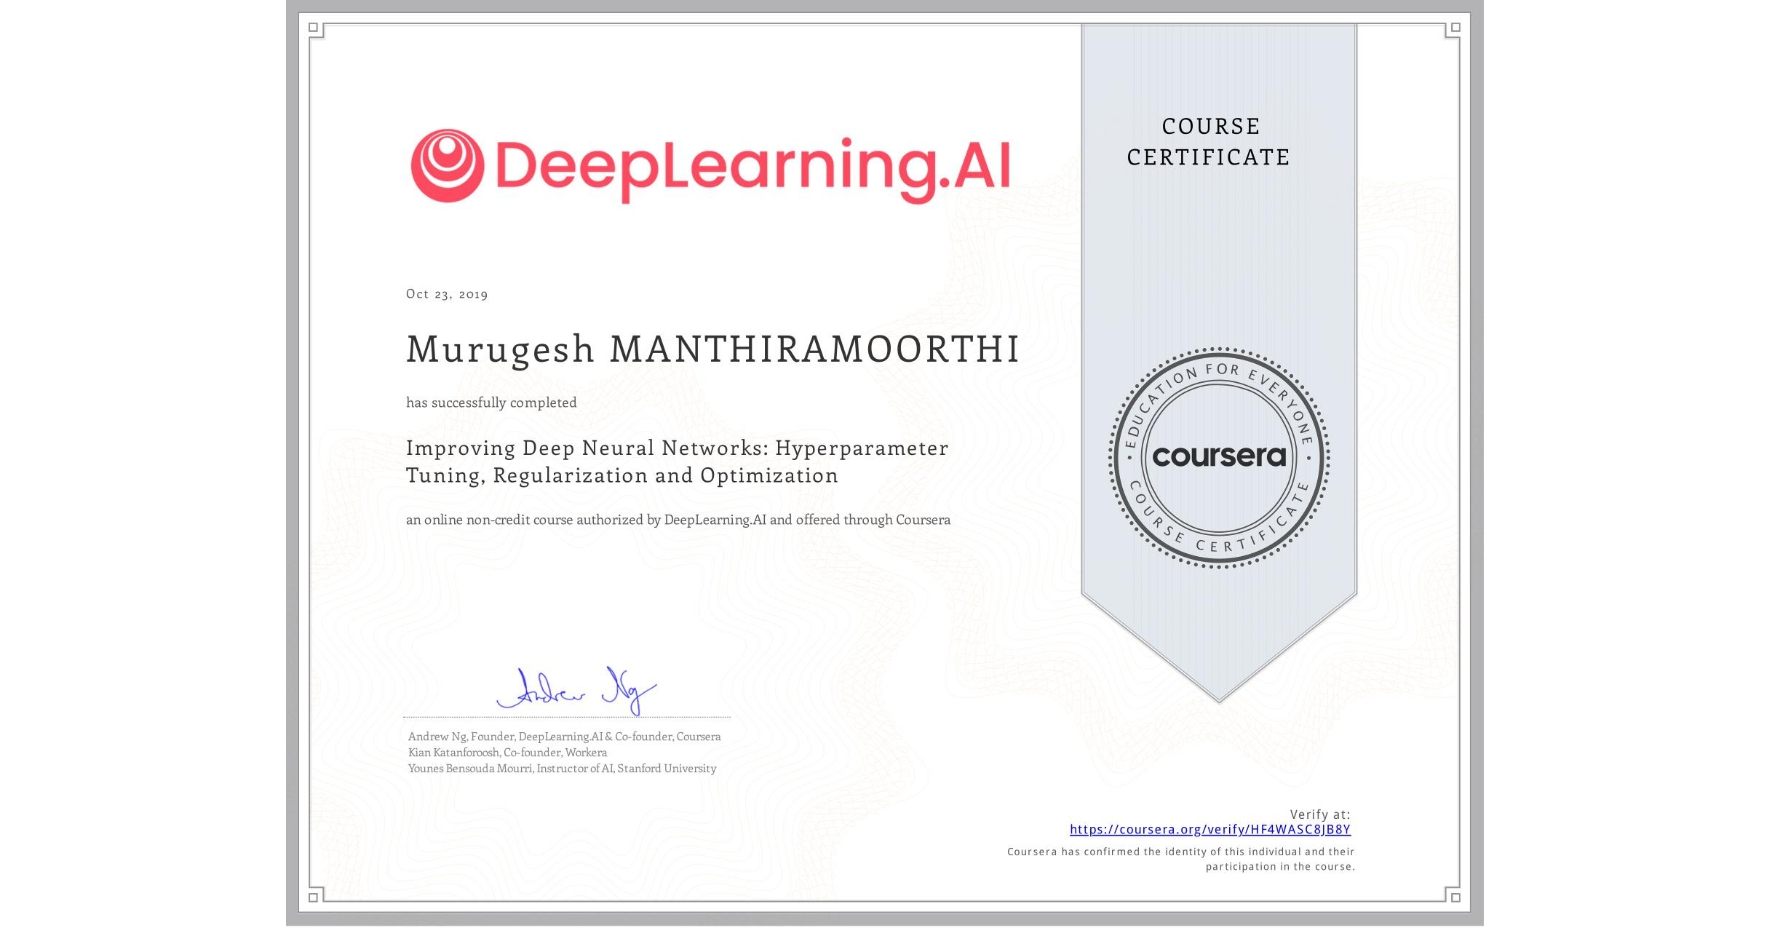 View certificate for Murugesh Manthiramoorthi, Improving Deep Neural Networks: Hyperparameter Tuning, Regularization and Optimization, an online non-credit course authorized by DeepLearning.AI and offered through Coursera